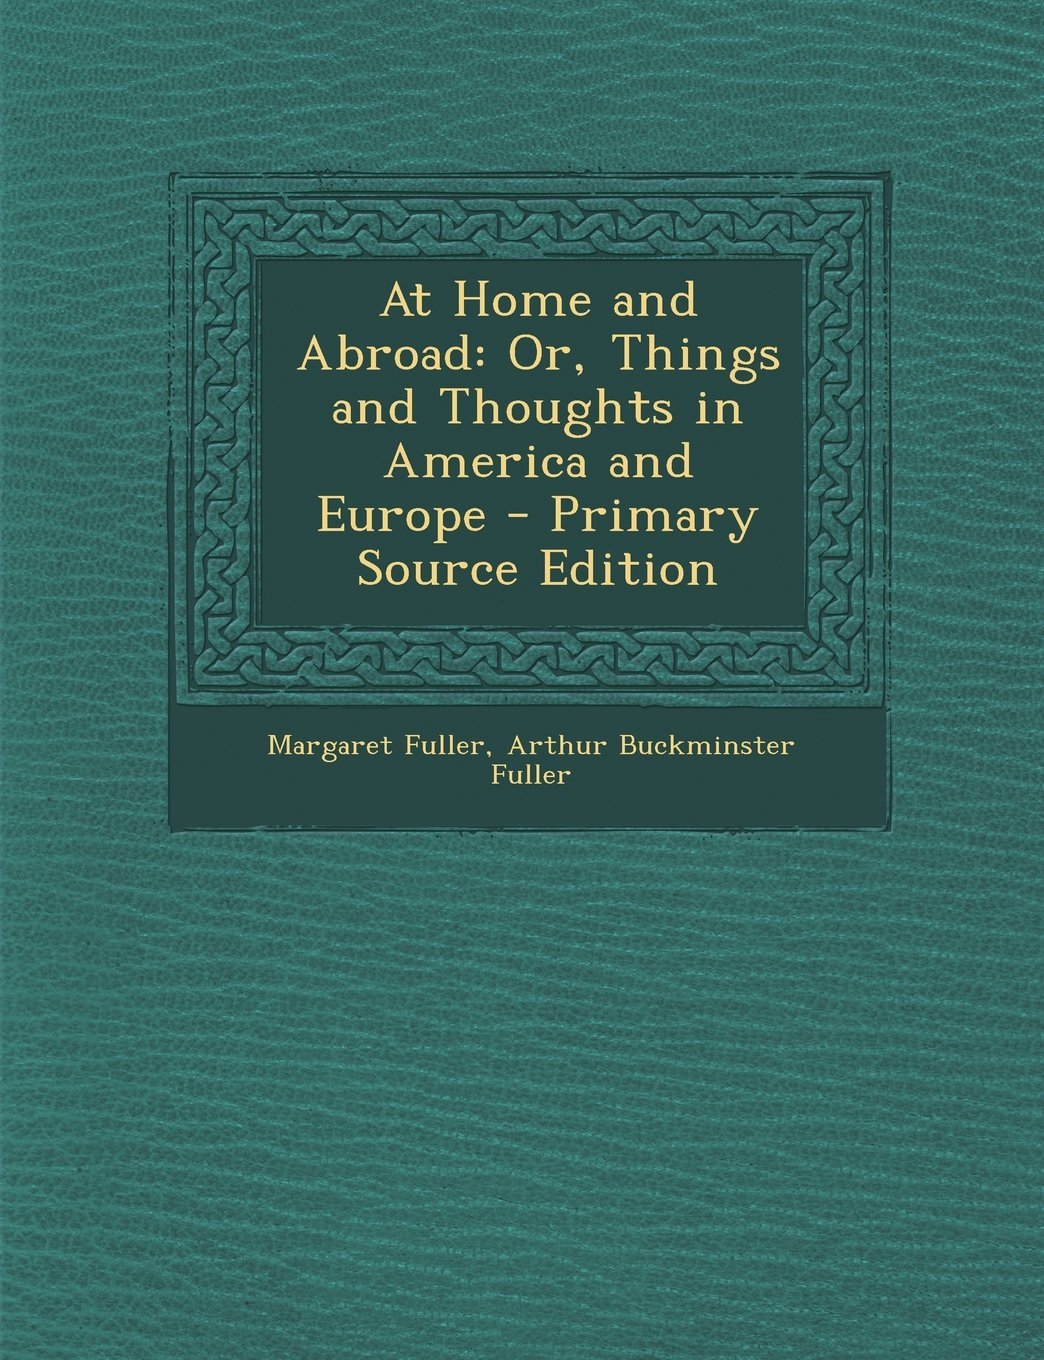 Download At Home and Abroad: Or, Things and Thoughts in America and Europe - Primary Source Edition pdf